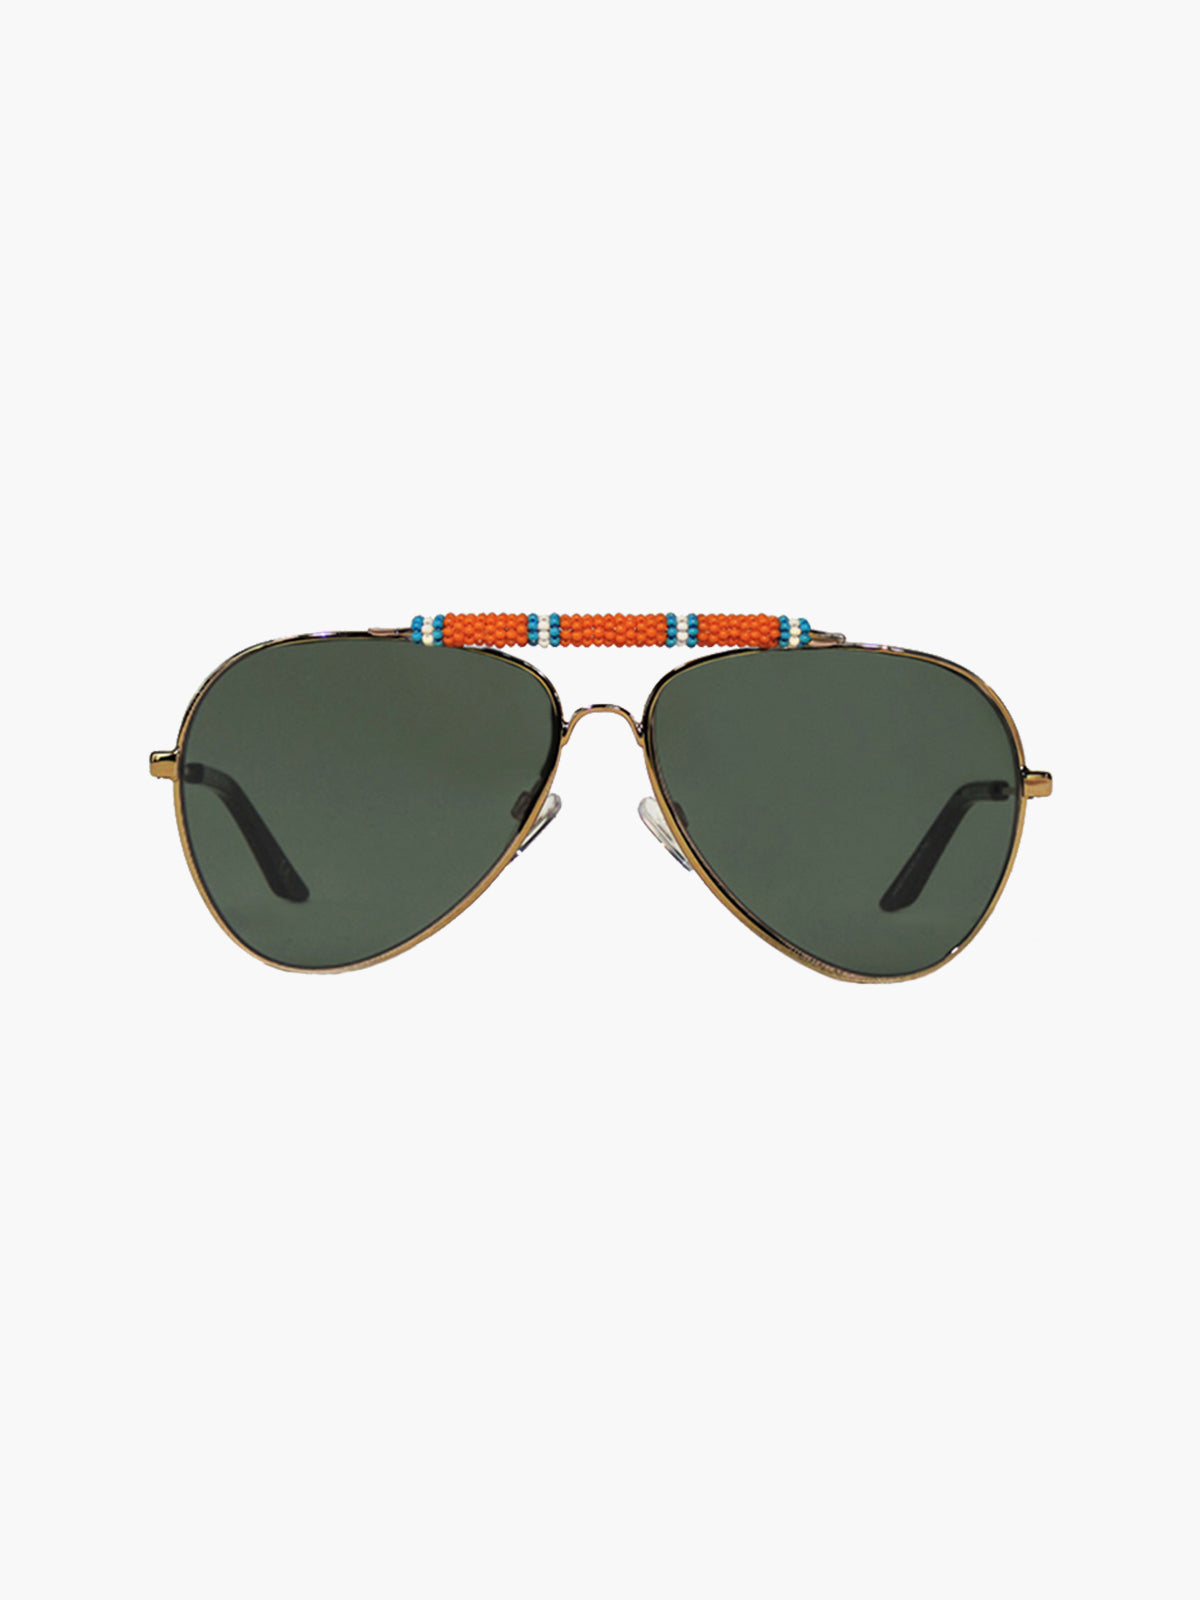 Exclusive Sunglasses | Orange/Turquoise